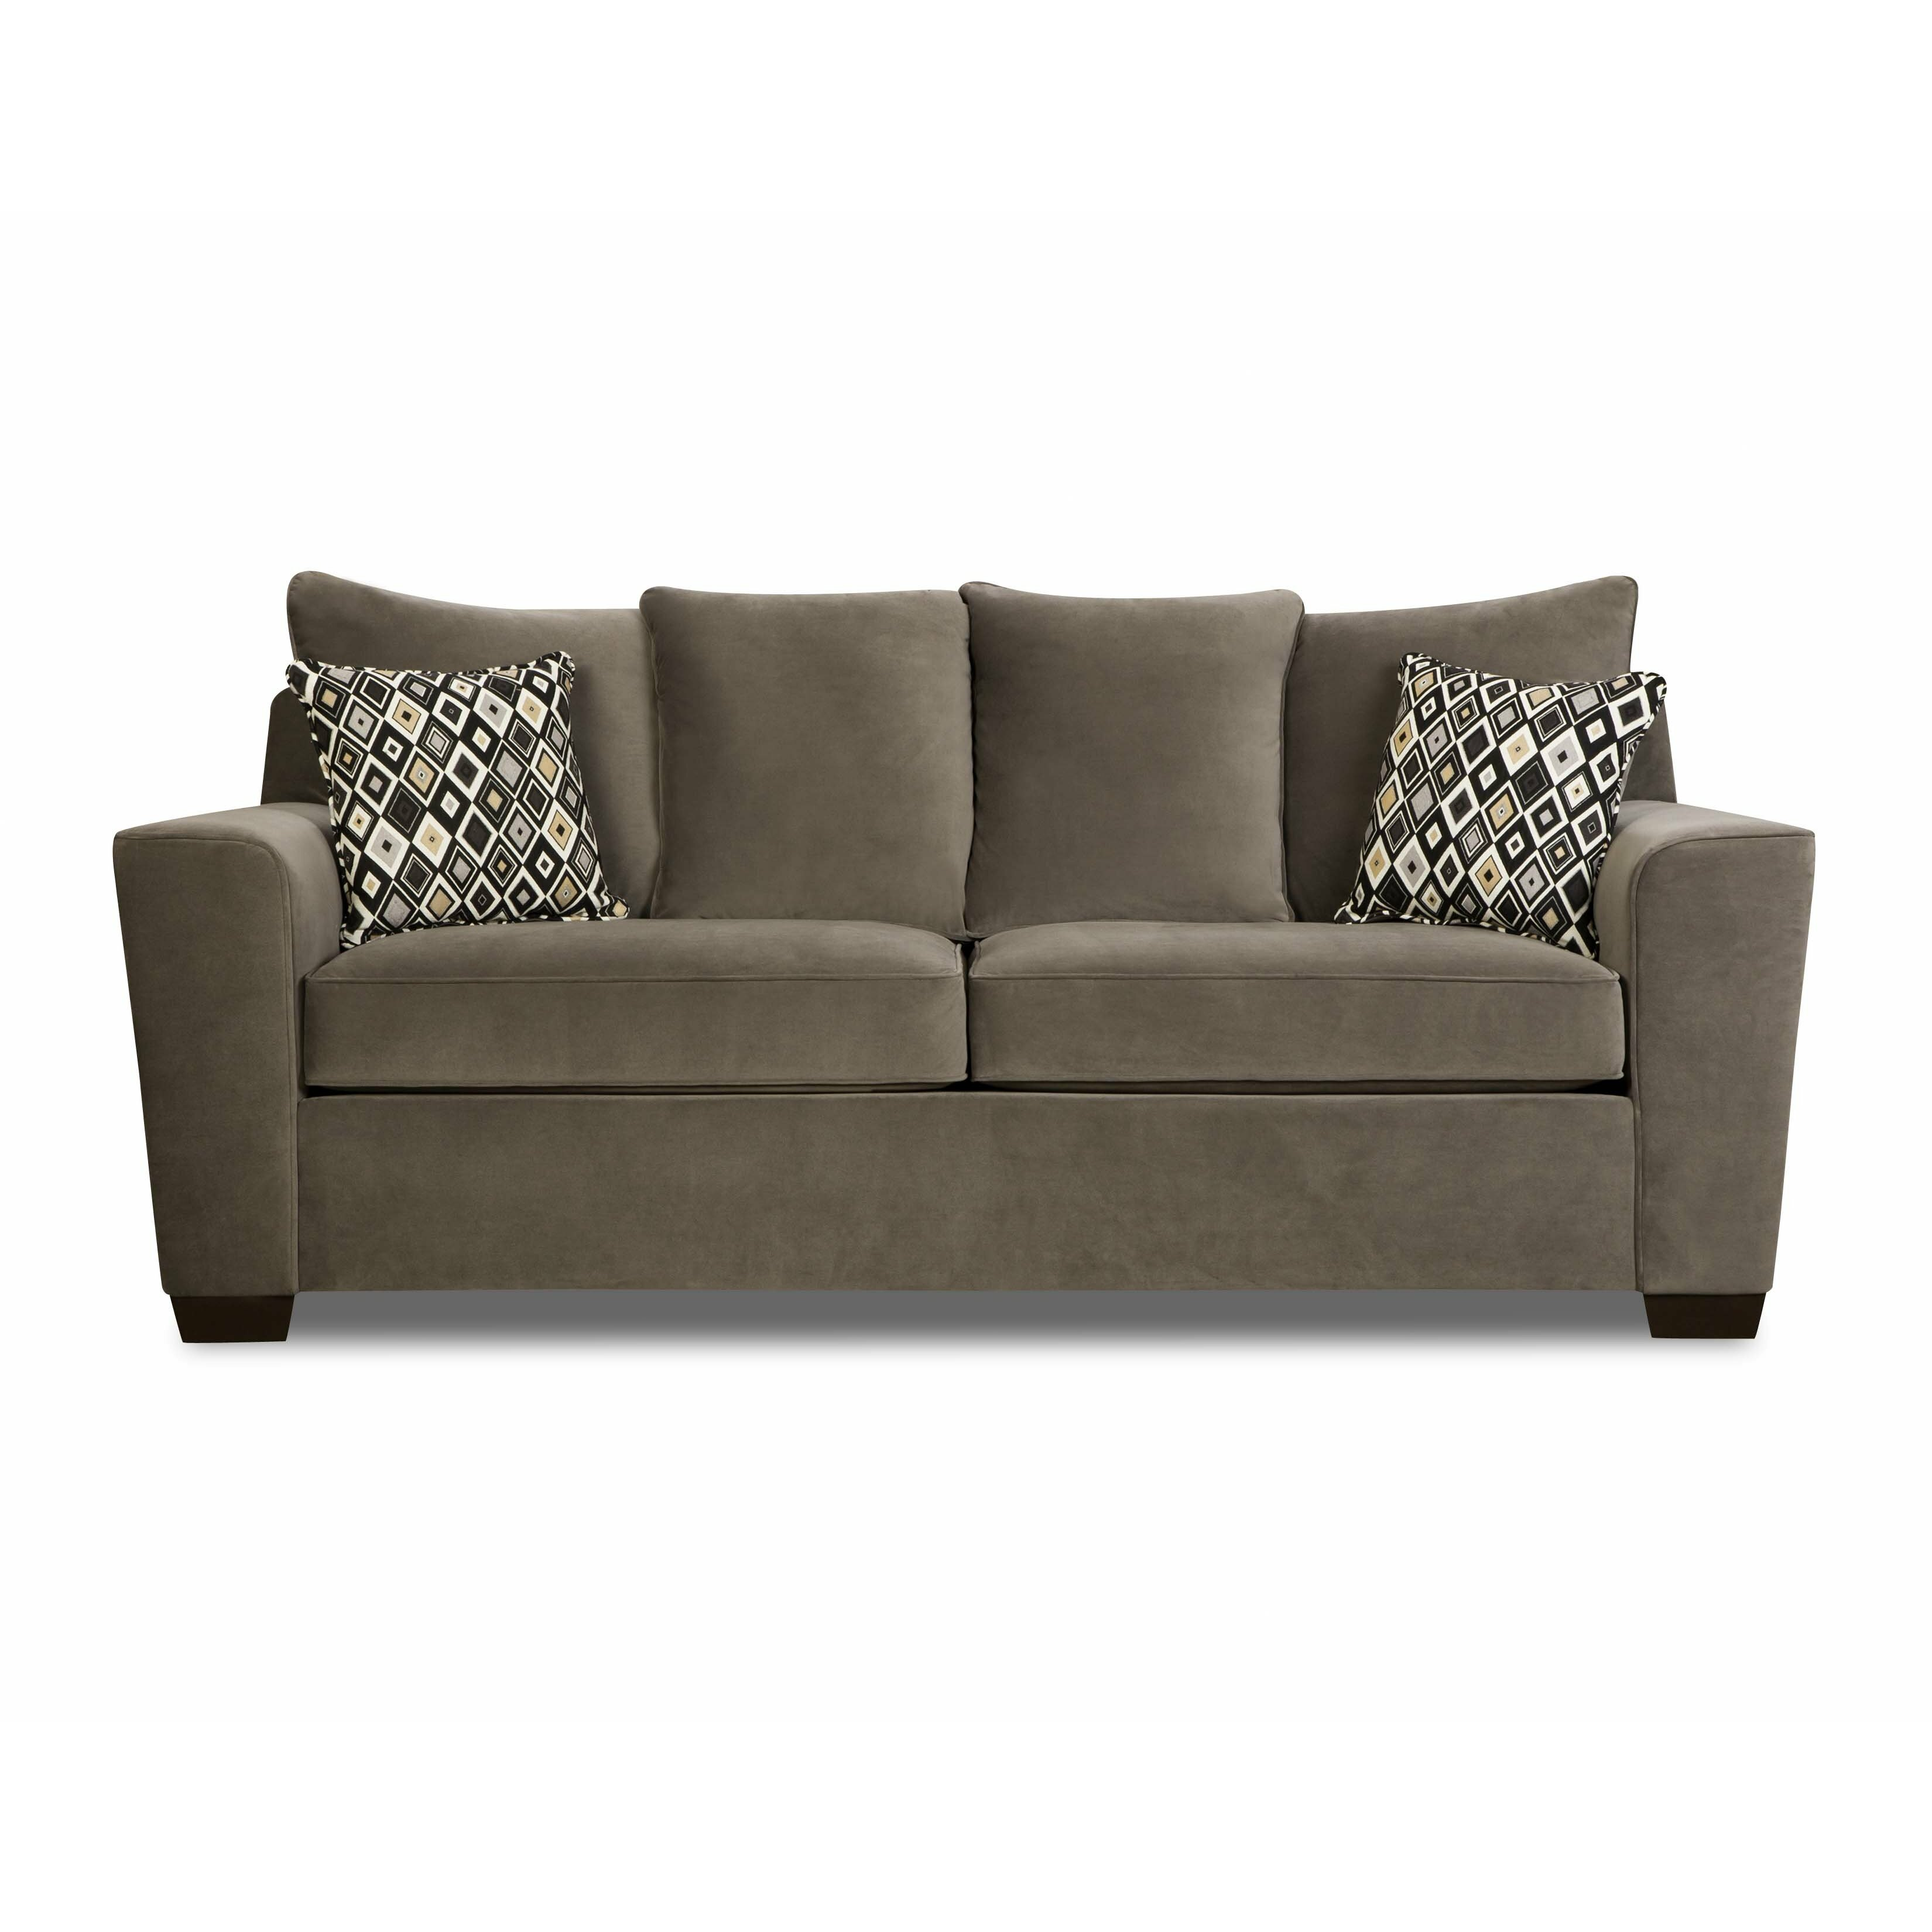 Simmons upholstery roxanne queen sleeper sofa reviews for Sofa upholstery